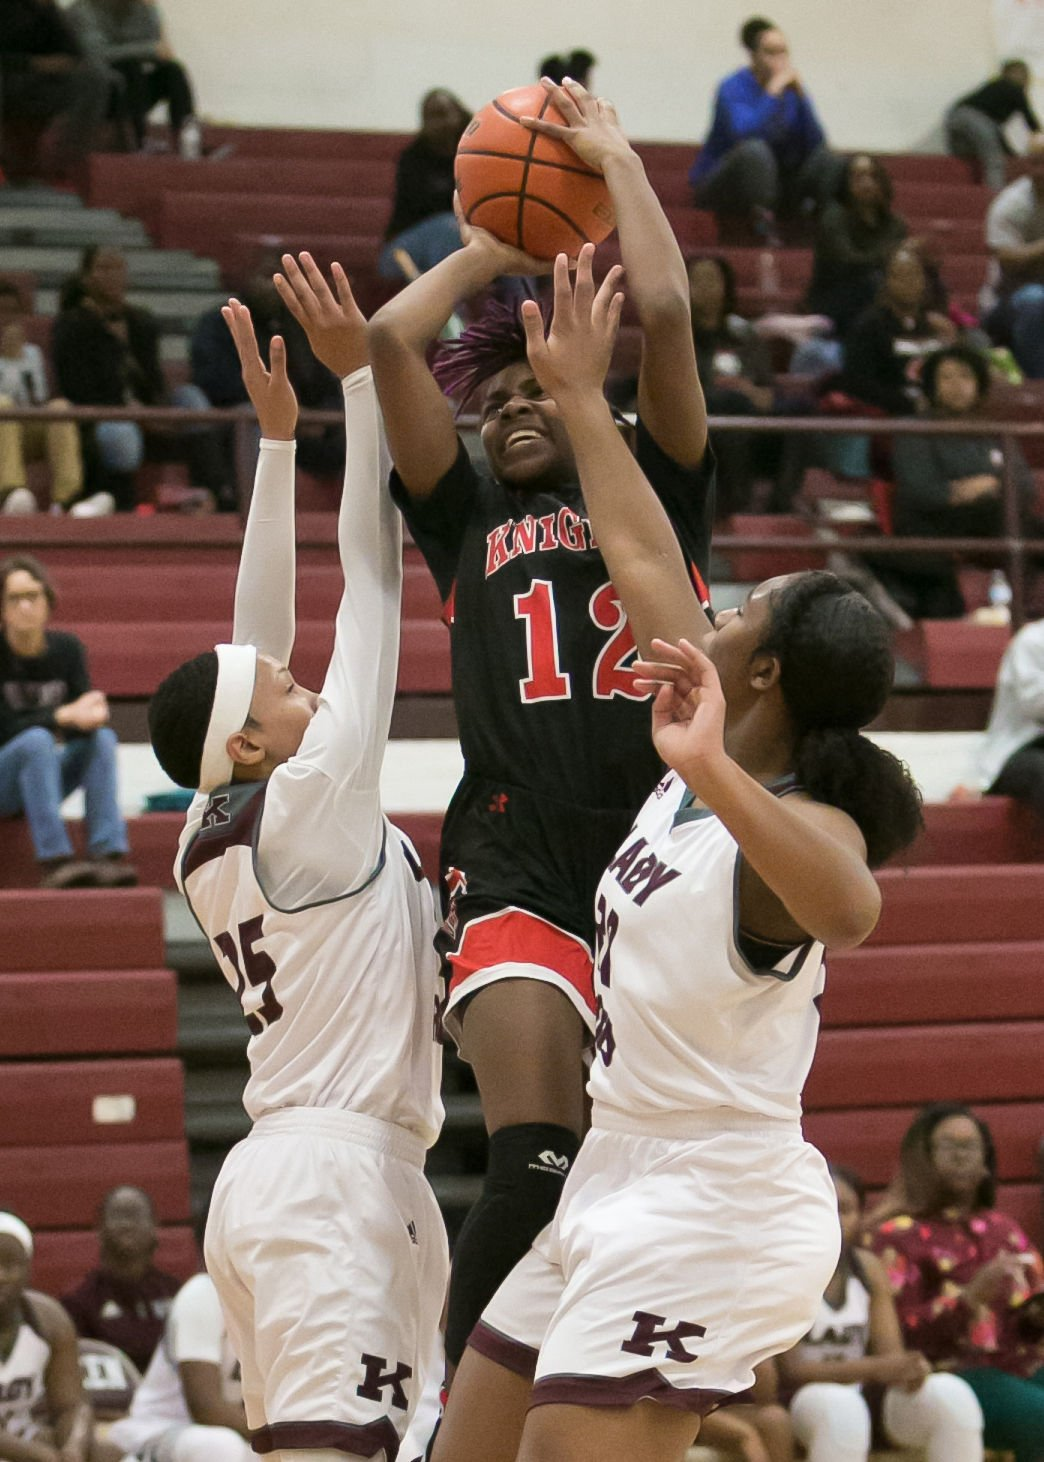 Harker Heights at Killeen Girls Basketball